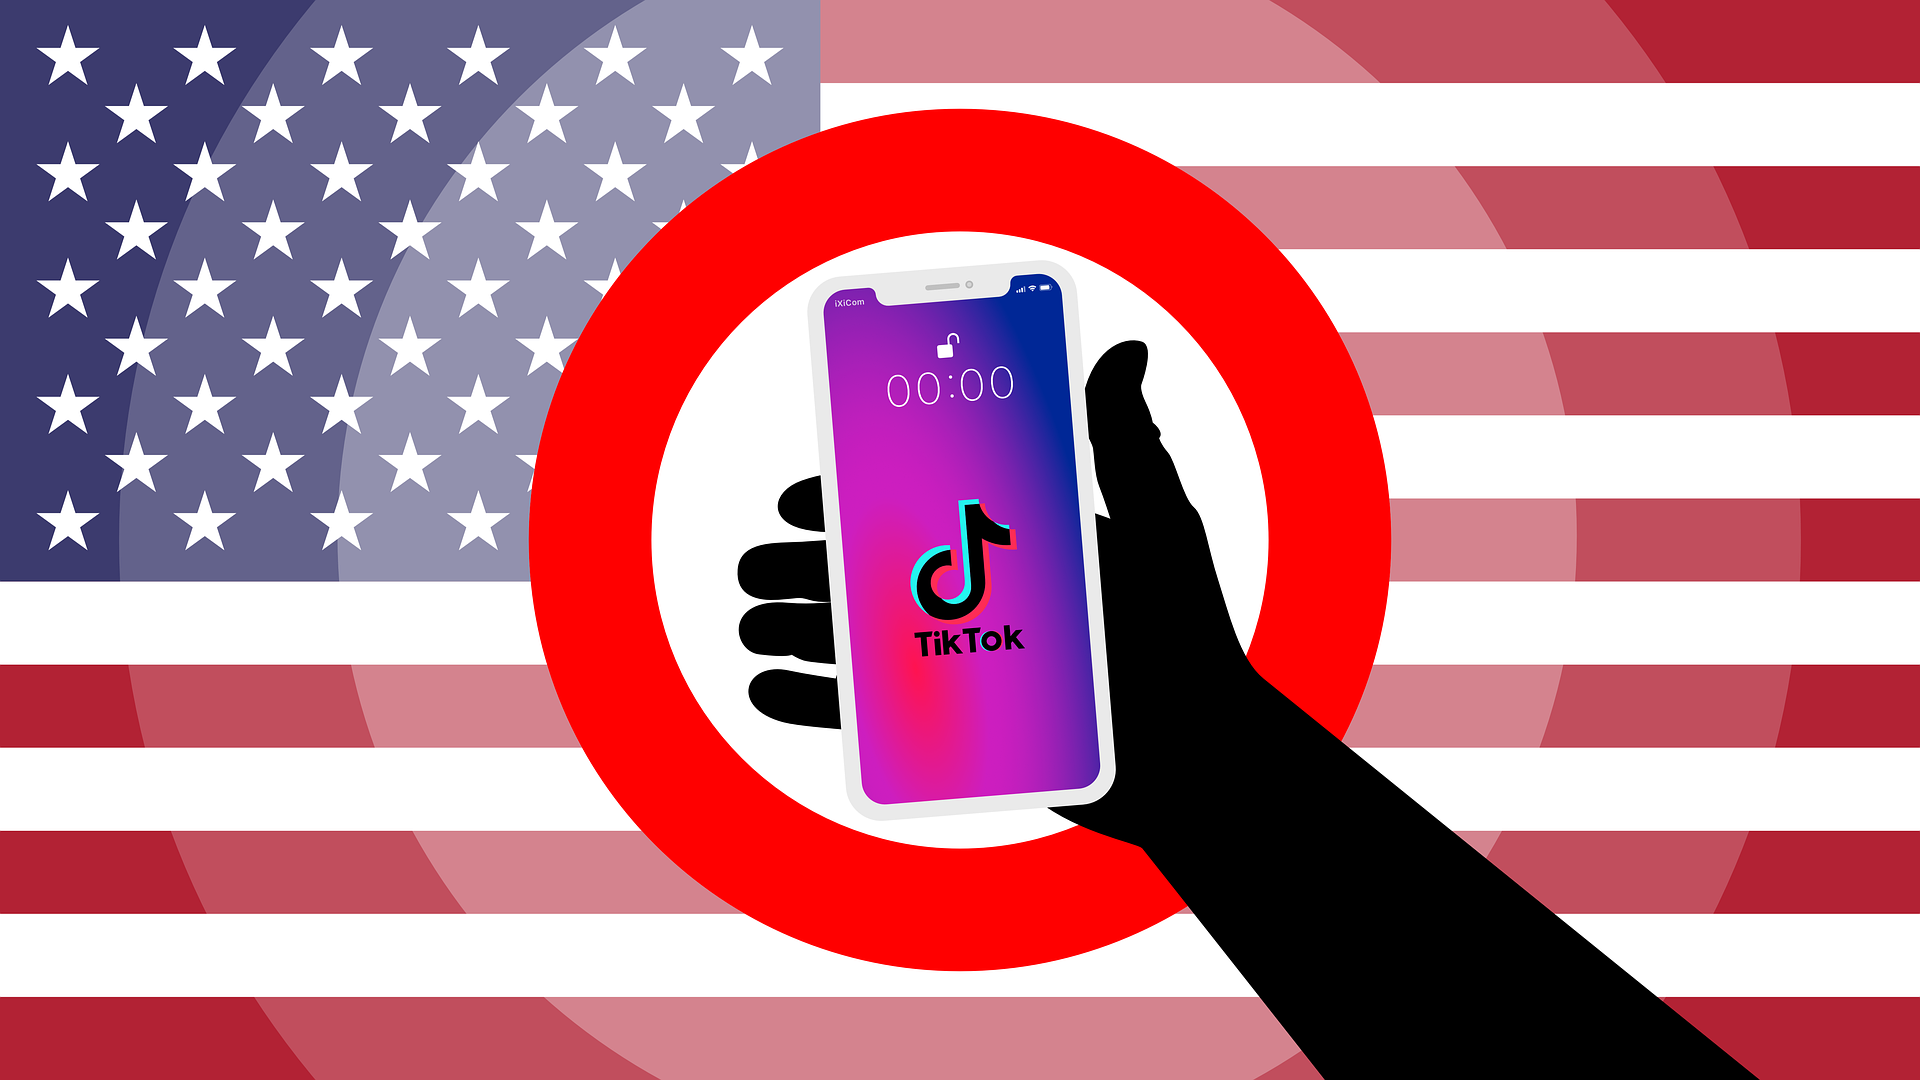 Access Alert: U.S. Publishes Restricted Transactions with TikTok and WeChat